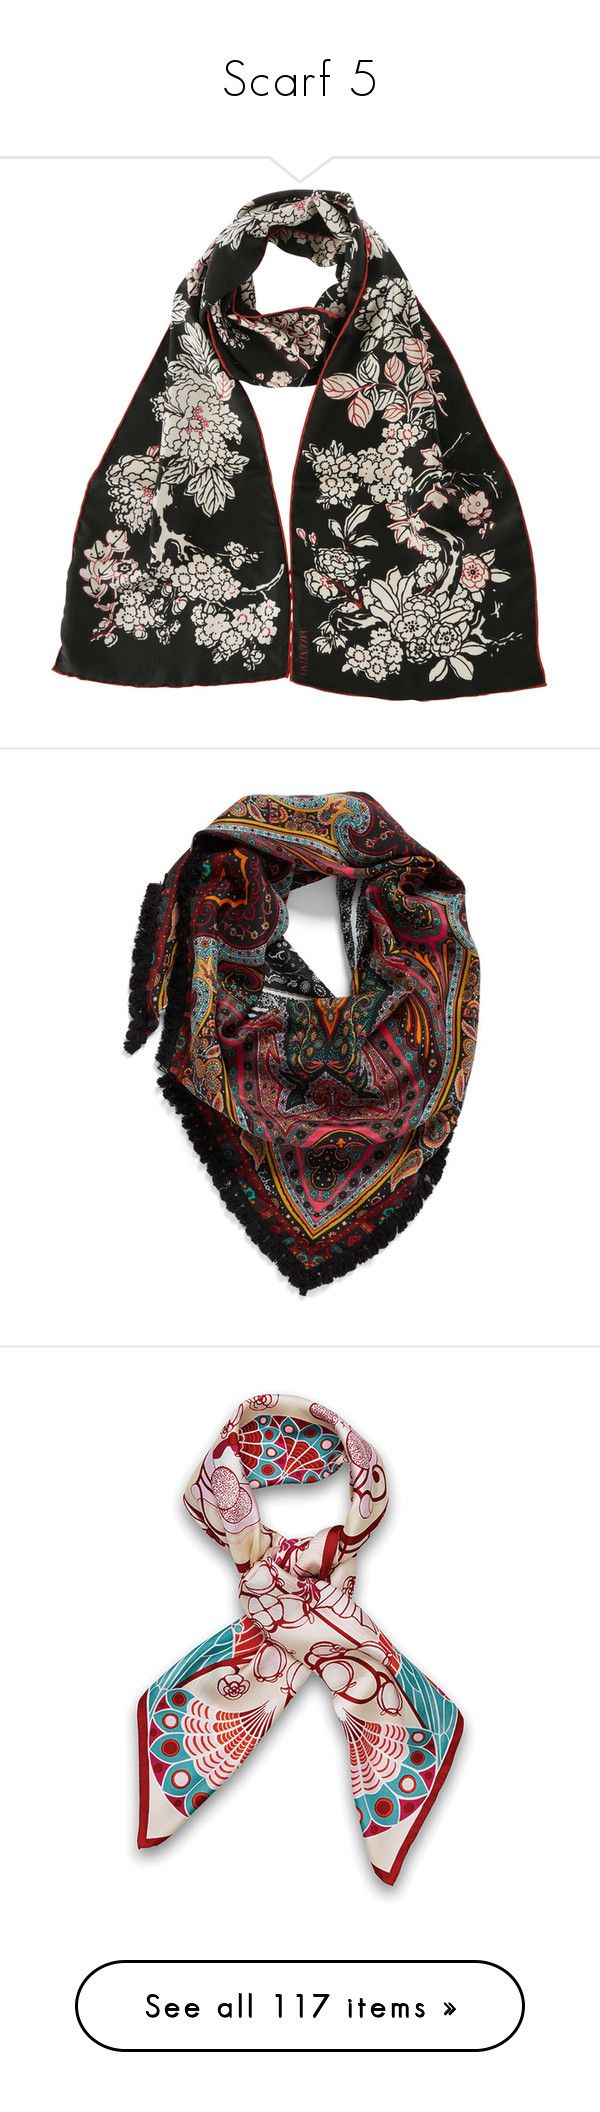 """""""Scarf 5"""" by dmiddleton ❤ liked on Polyvore featuring accessories, scarves, black, print scarves, patterned scarves, valentino scarves, multi, triangular shawl, silk scarves and echo scarves"""